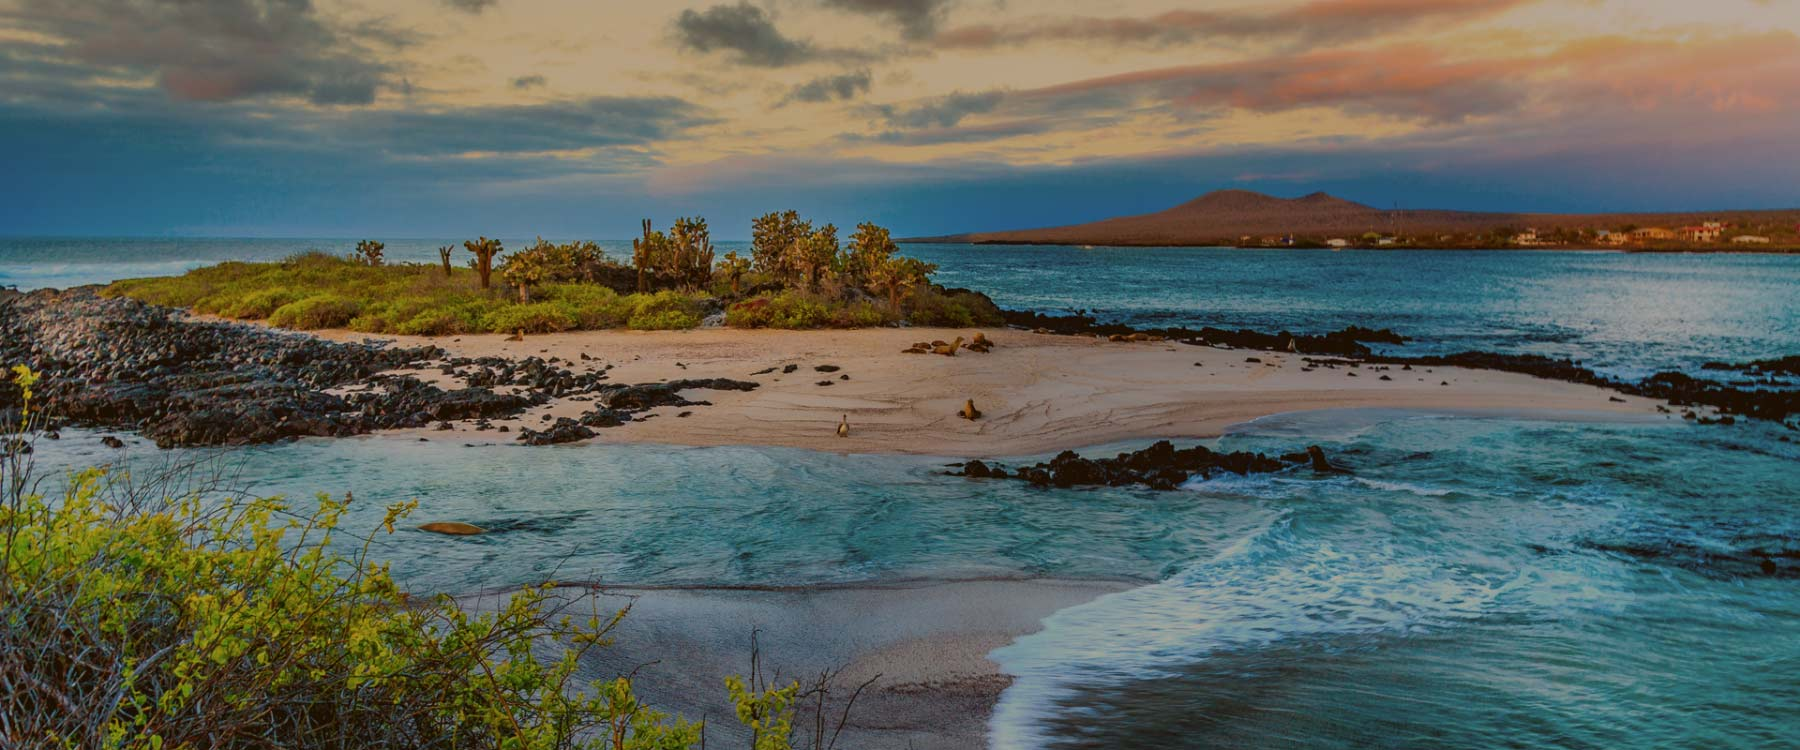 Galapagos island panoramic view